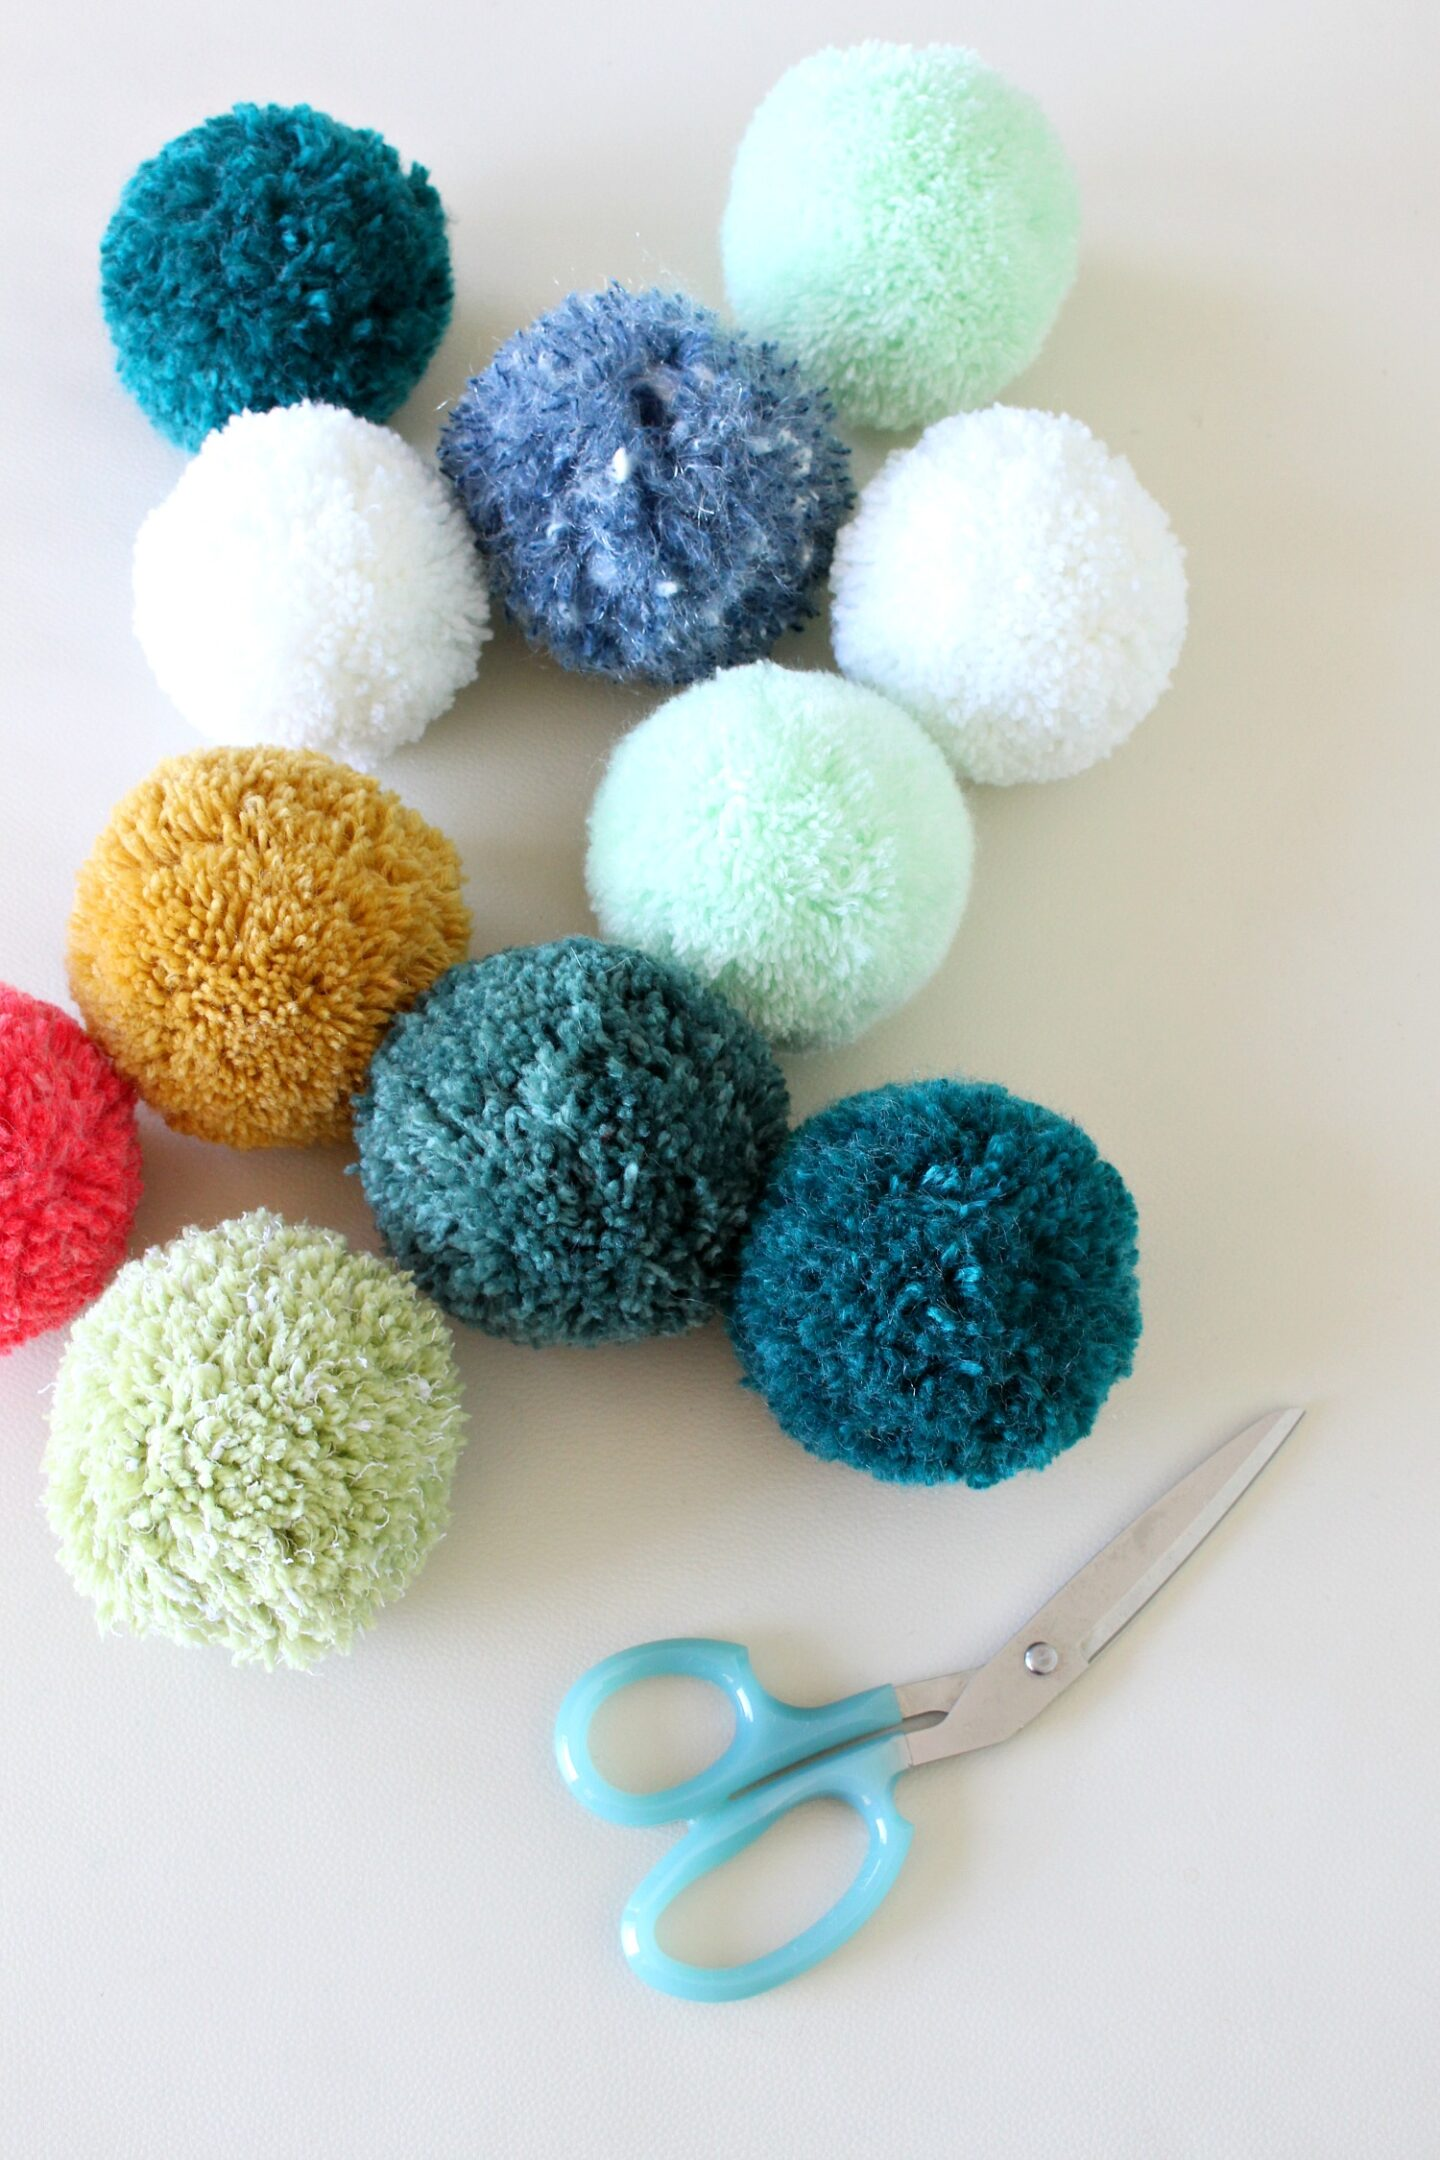 How to Make Larger Pom Poms